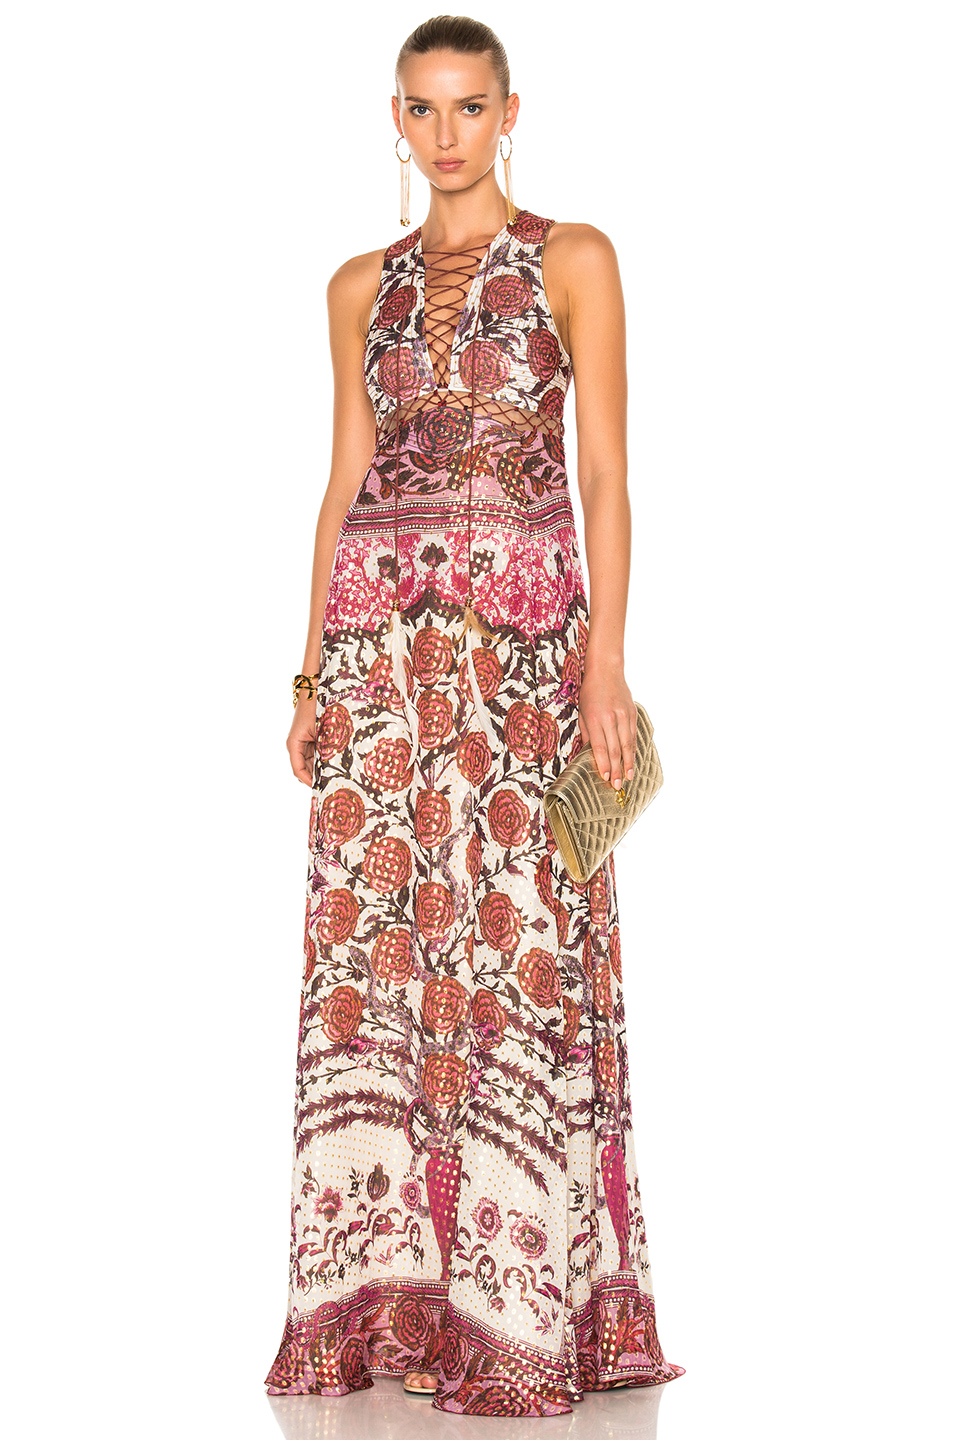 Roberto Cavalli Lace Up Detail Maxi Dress in Floral,Metallics,Red,White